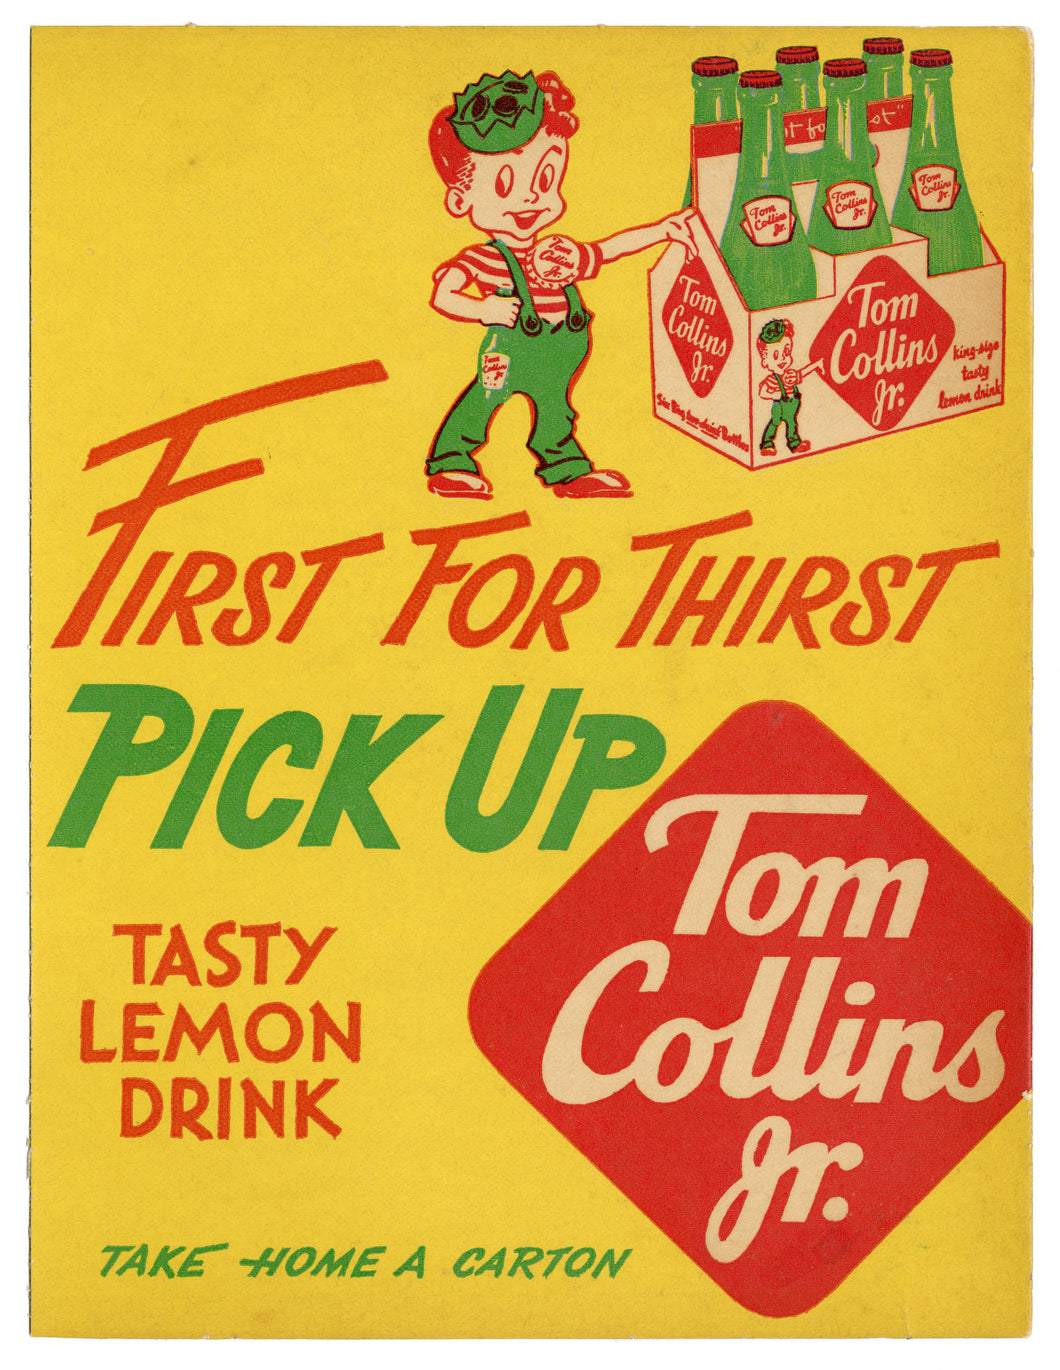 Vintage TOM COLLINS JR. Lemon Soda Store Display, Non-Alcoholic Beverage